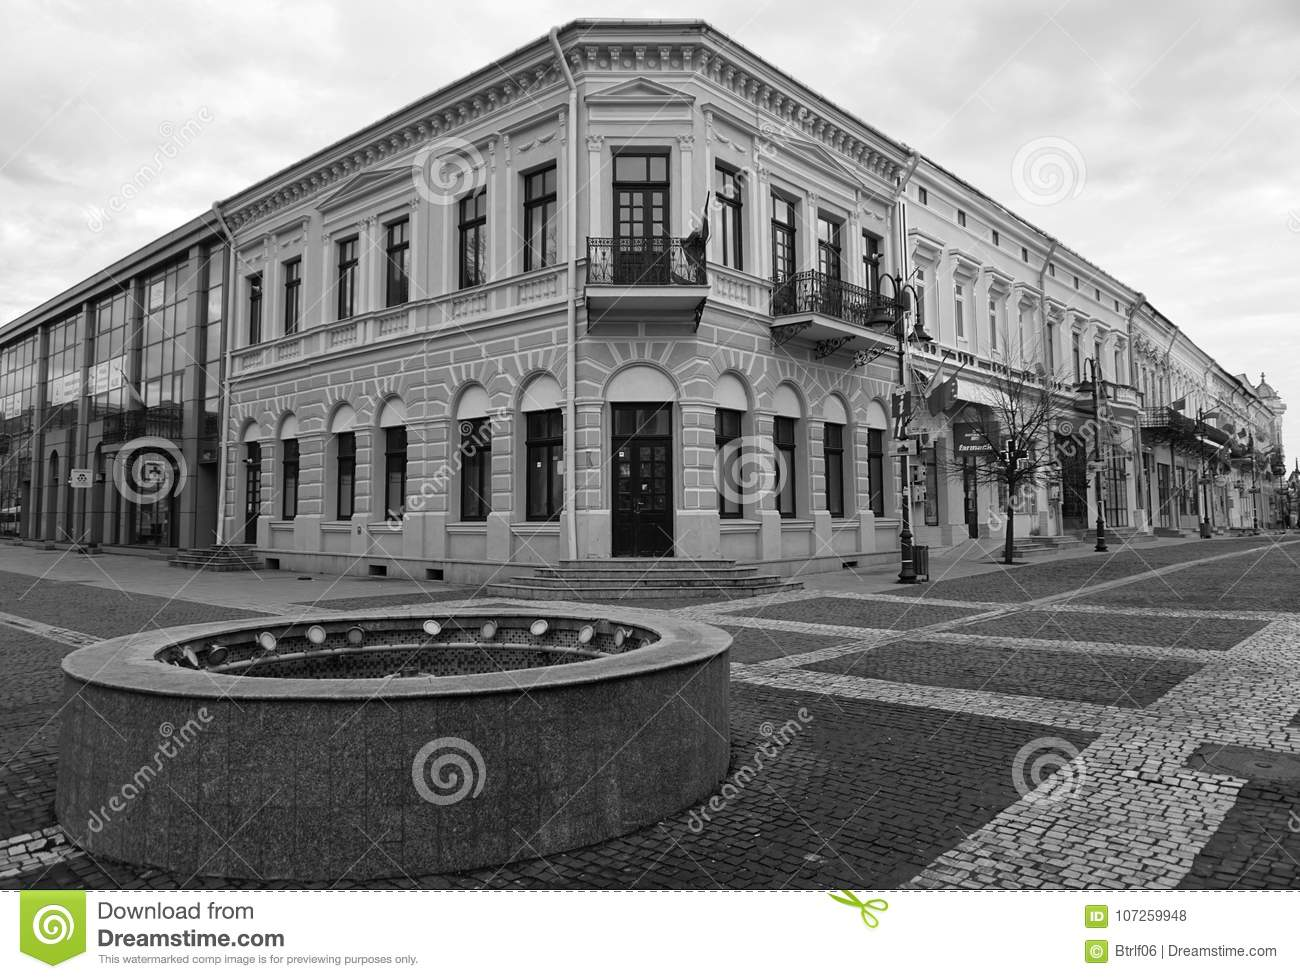 Old building in black and white